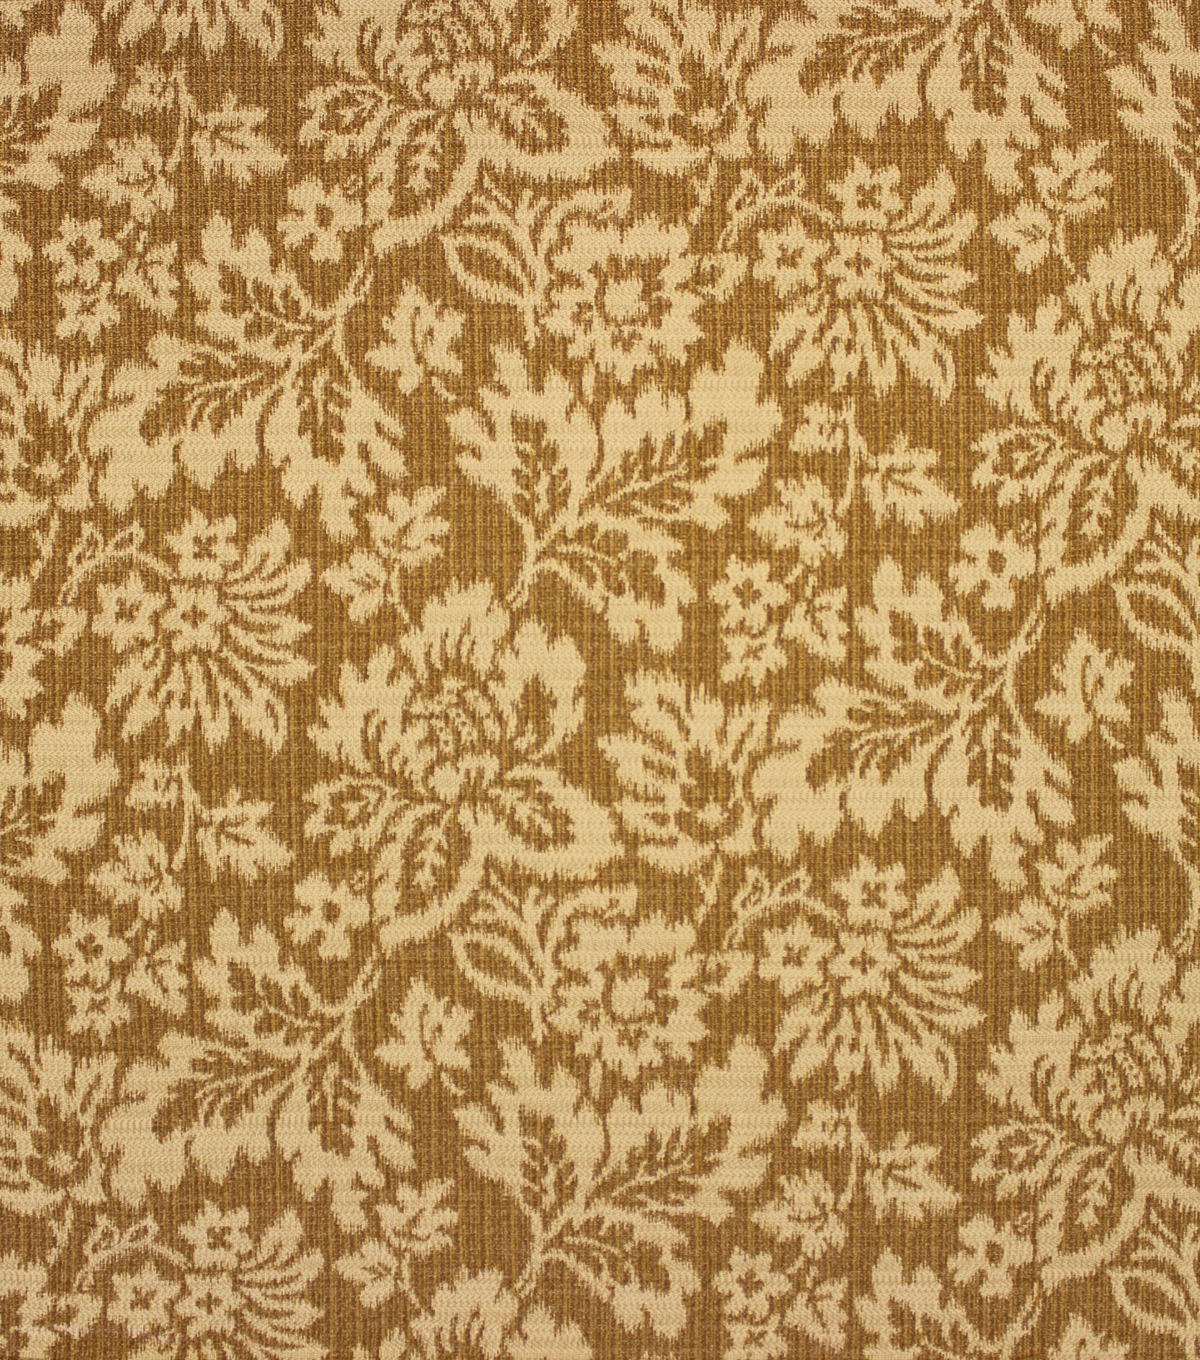 Home Decor 8\u0022x8\u0022 Fabric Swatch-Upholstery Fabric Barrow M8686-5129 Pollen